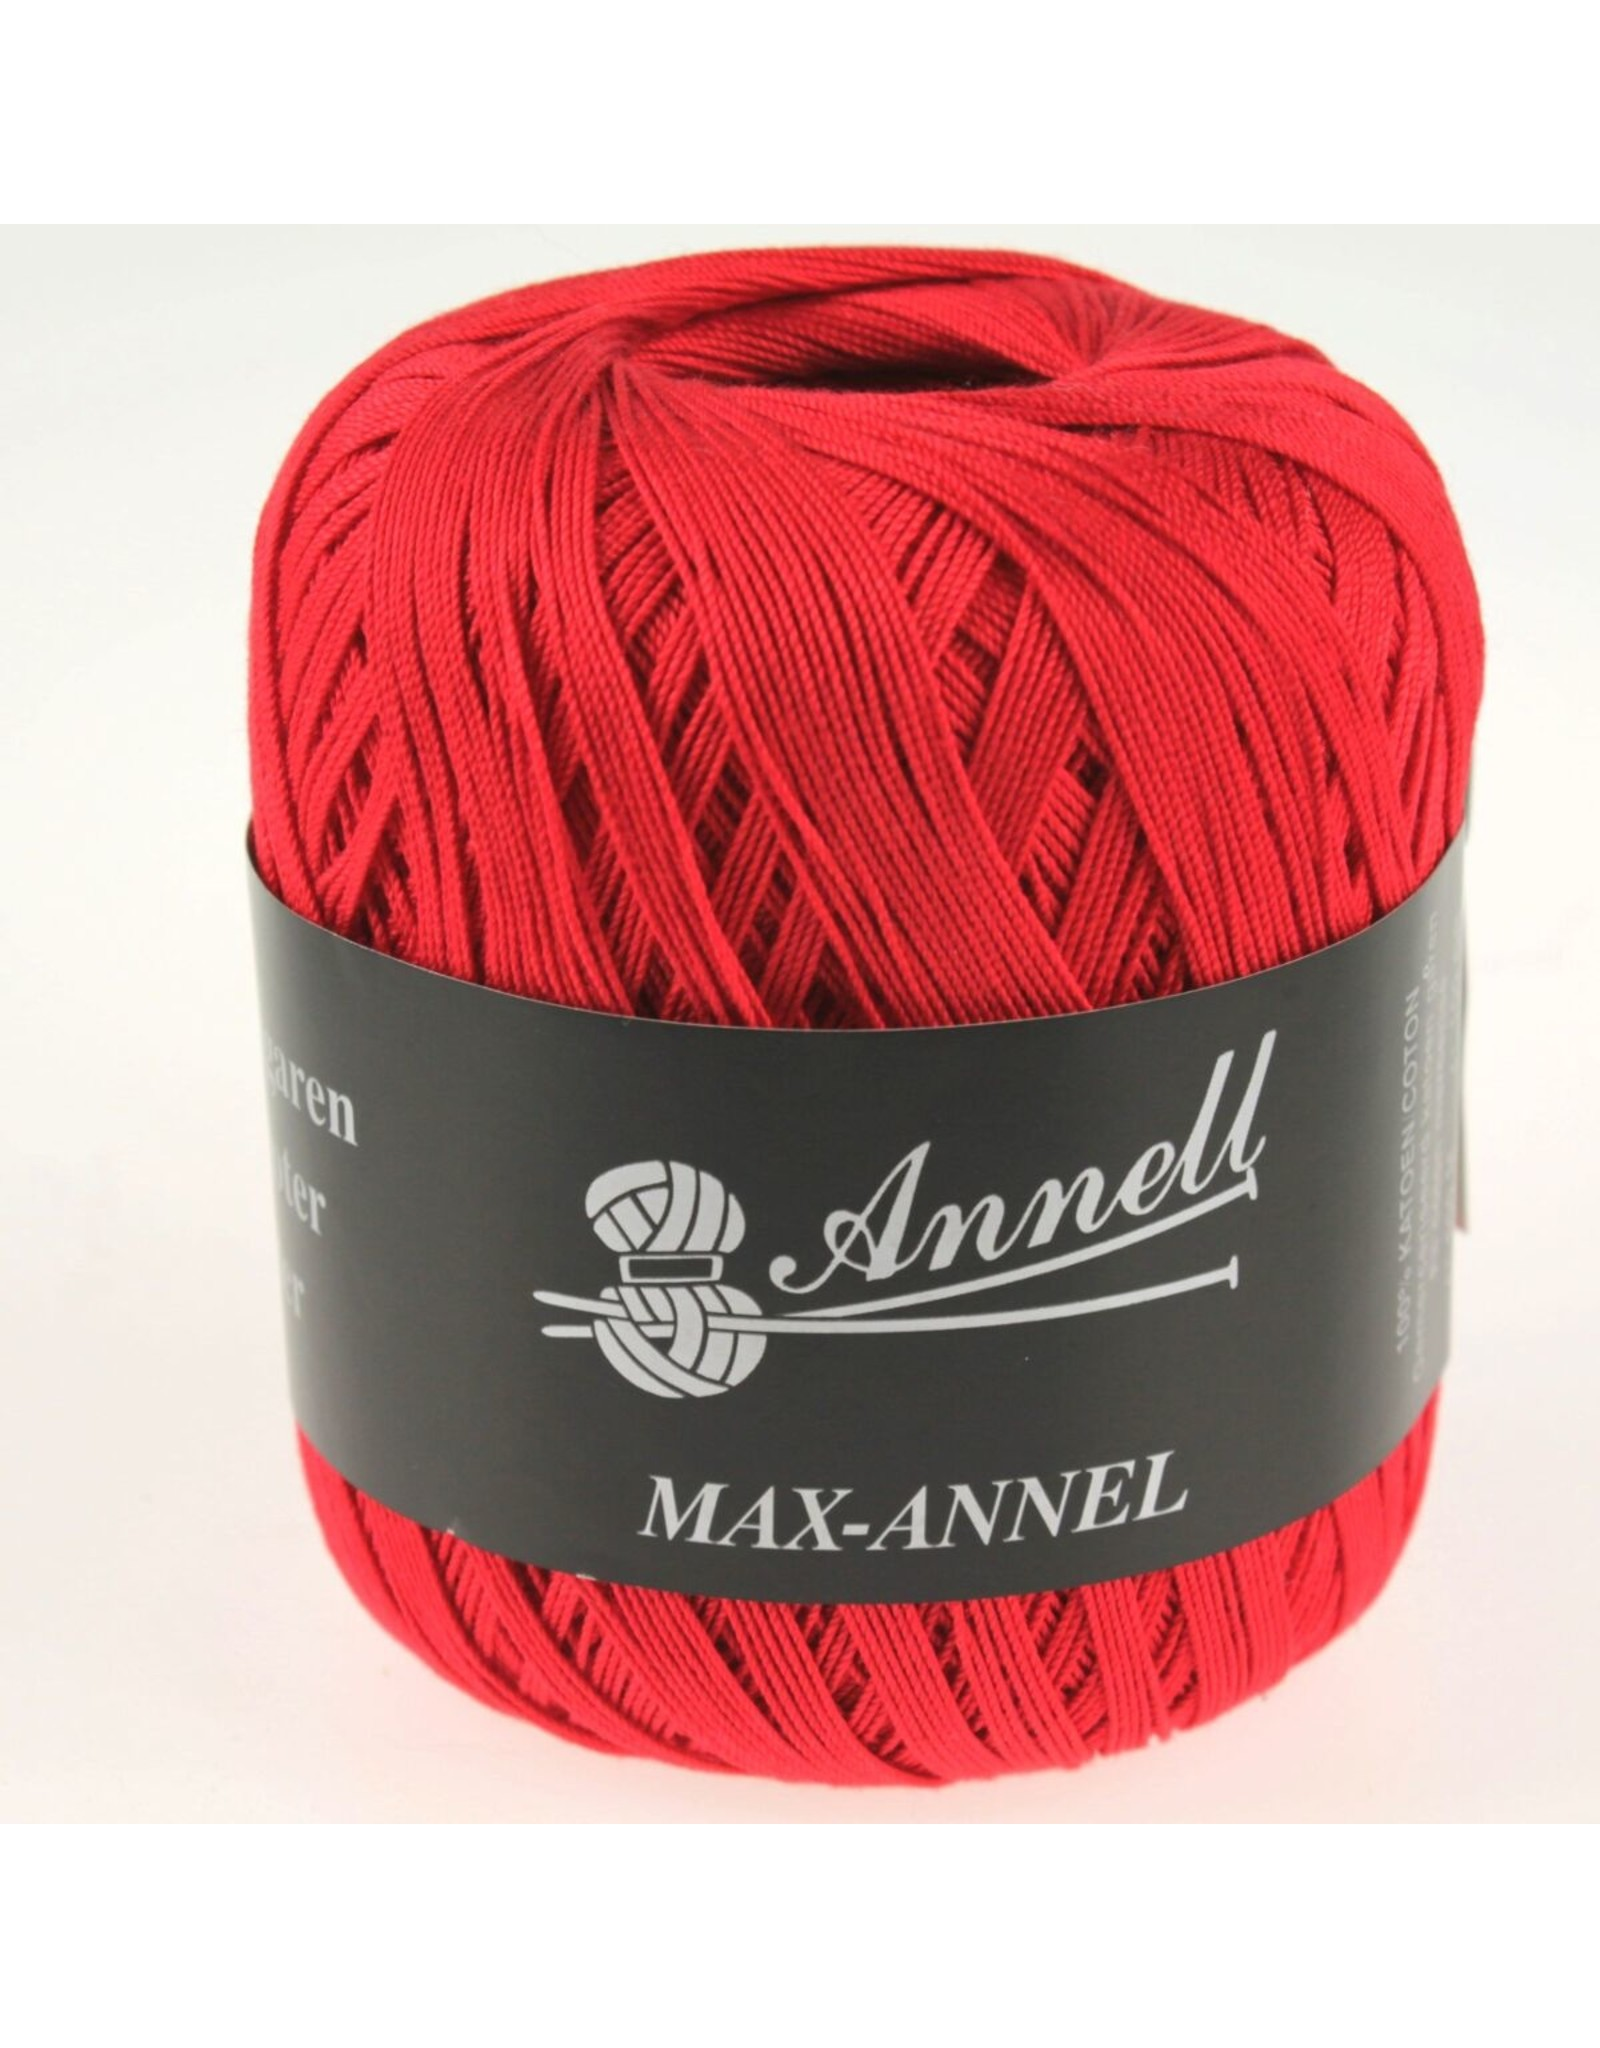 Annell Annell Max-Annell